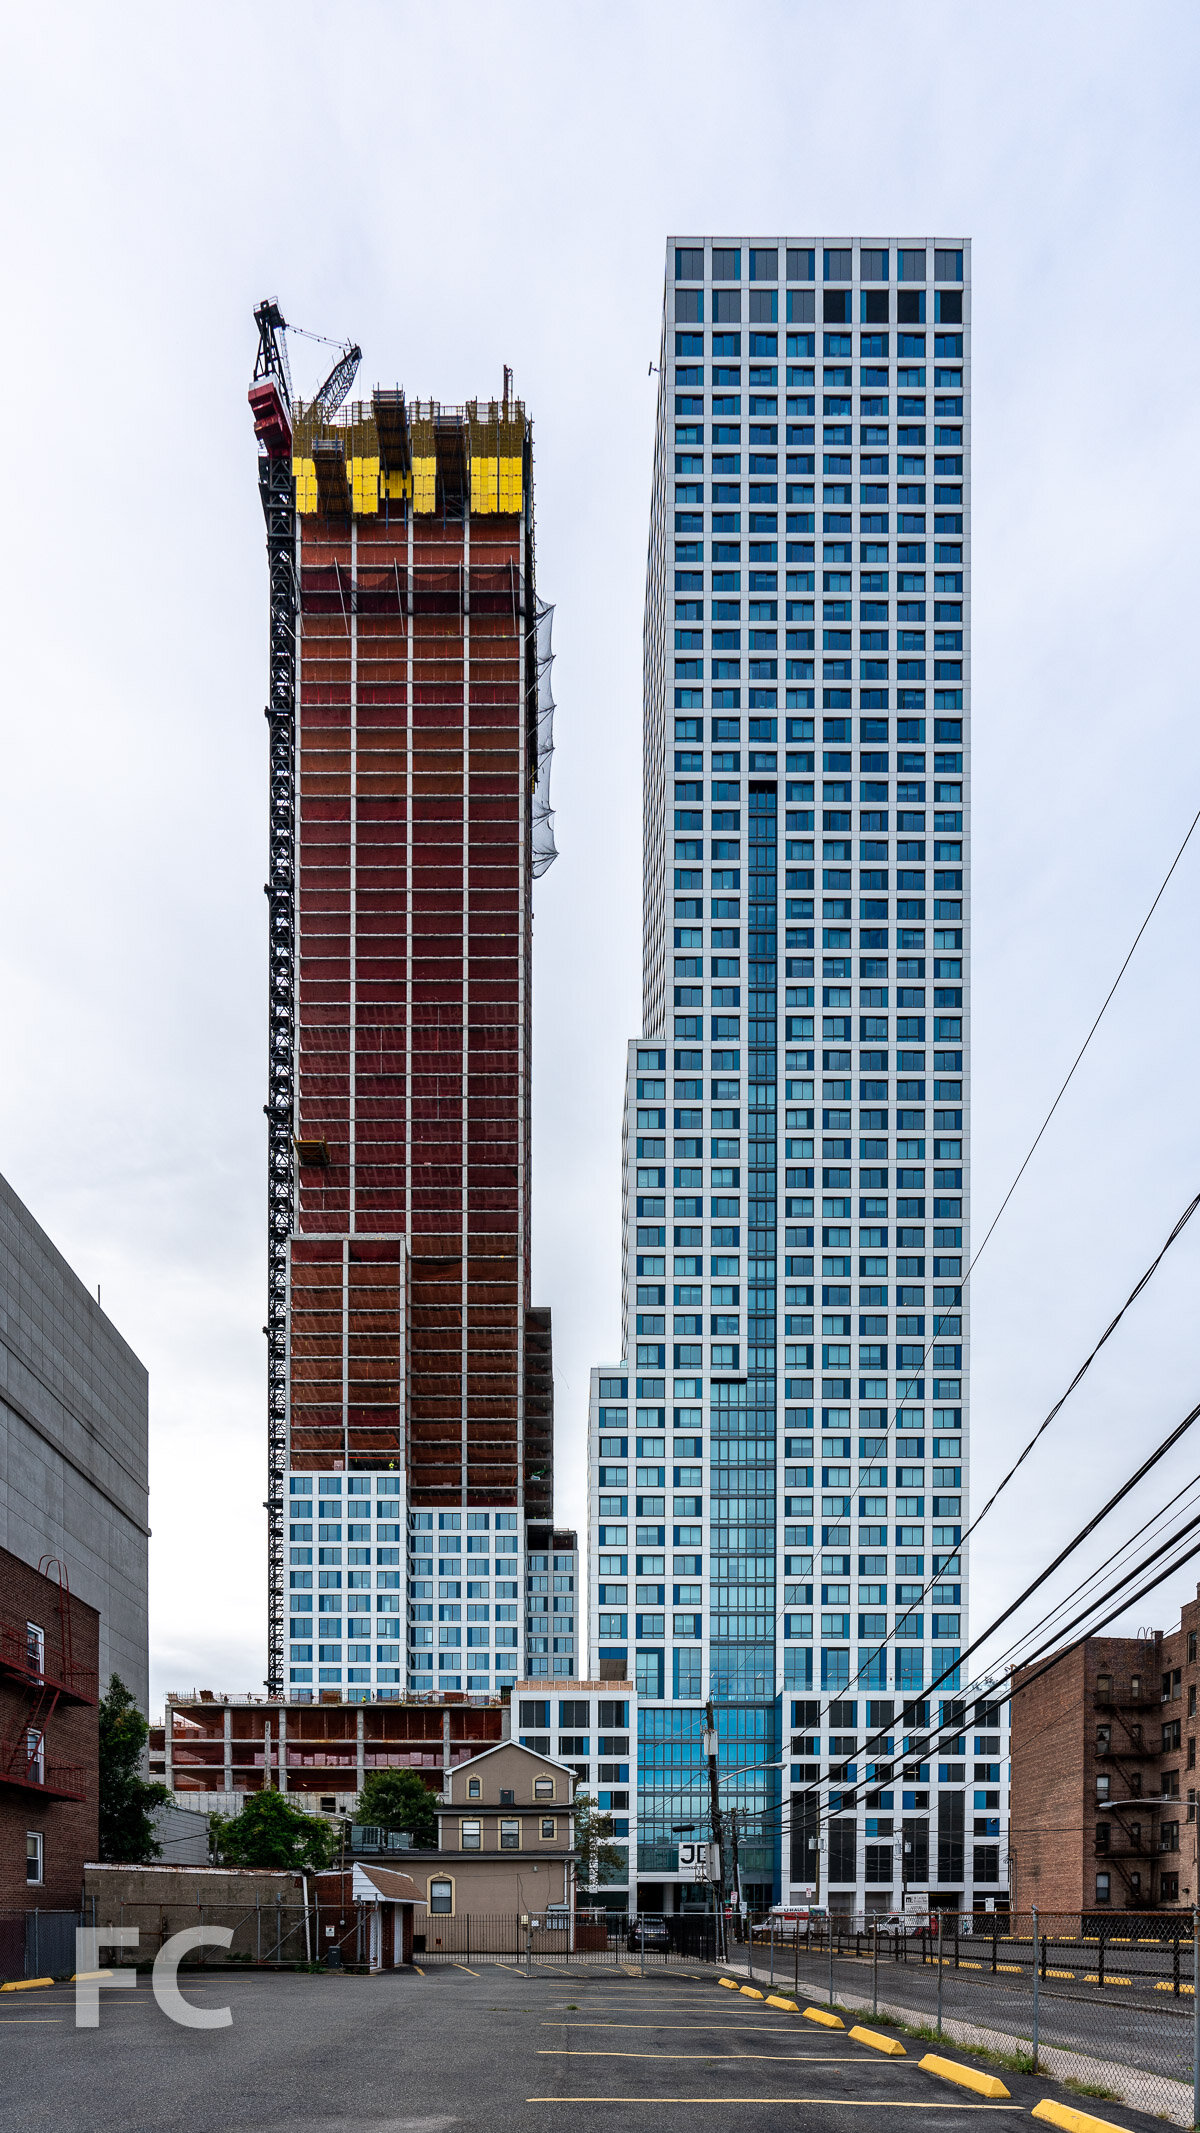 North facade of phase one (right) and phase two (left) from Van Reipen Avenue.